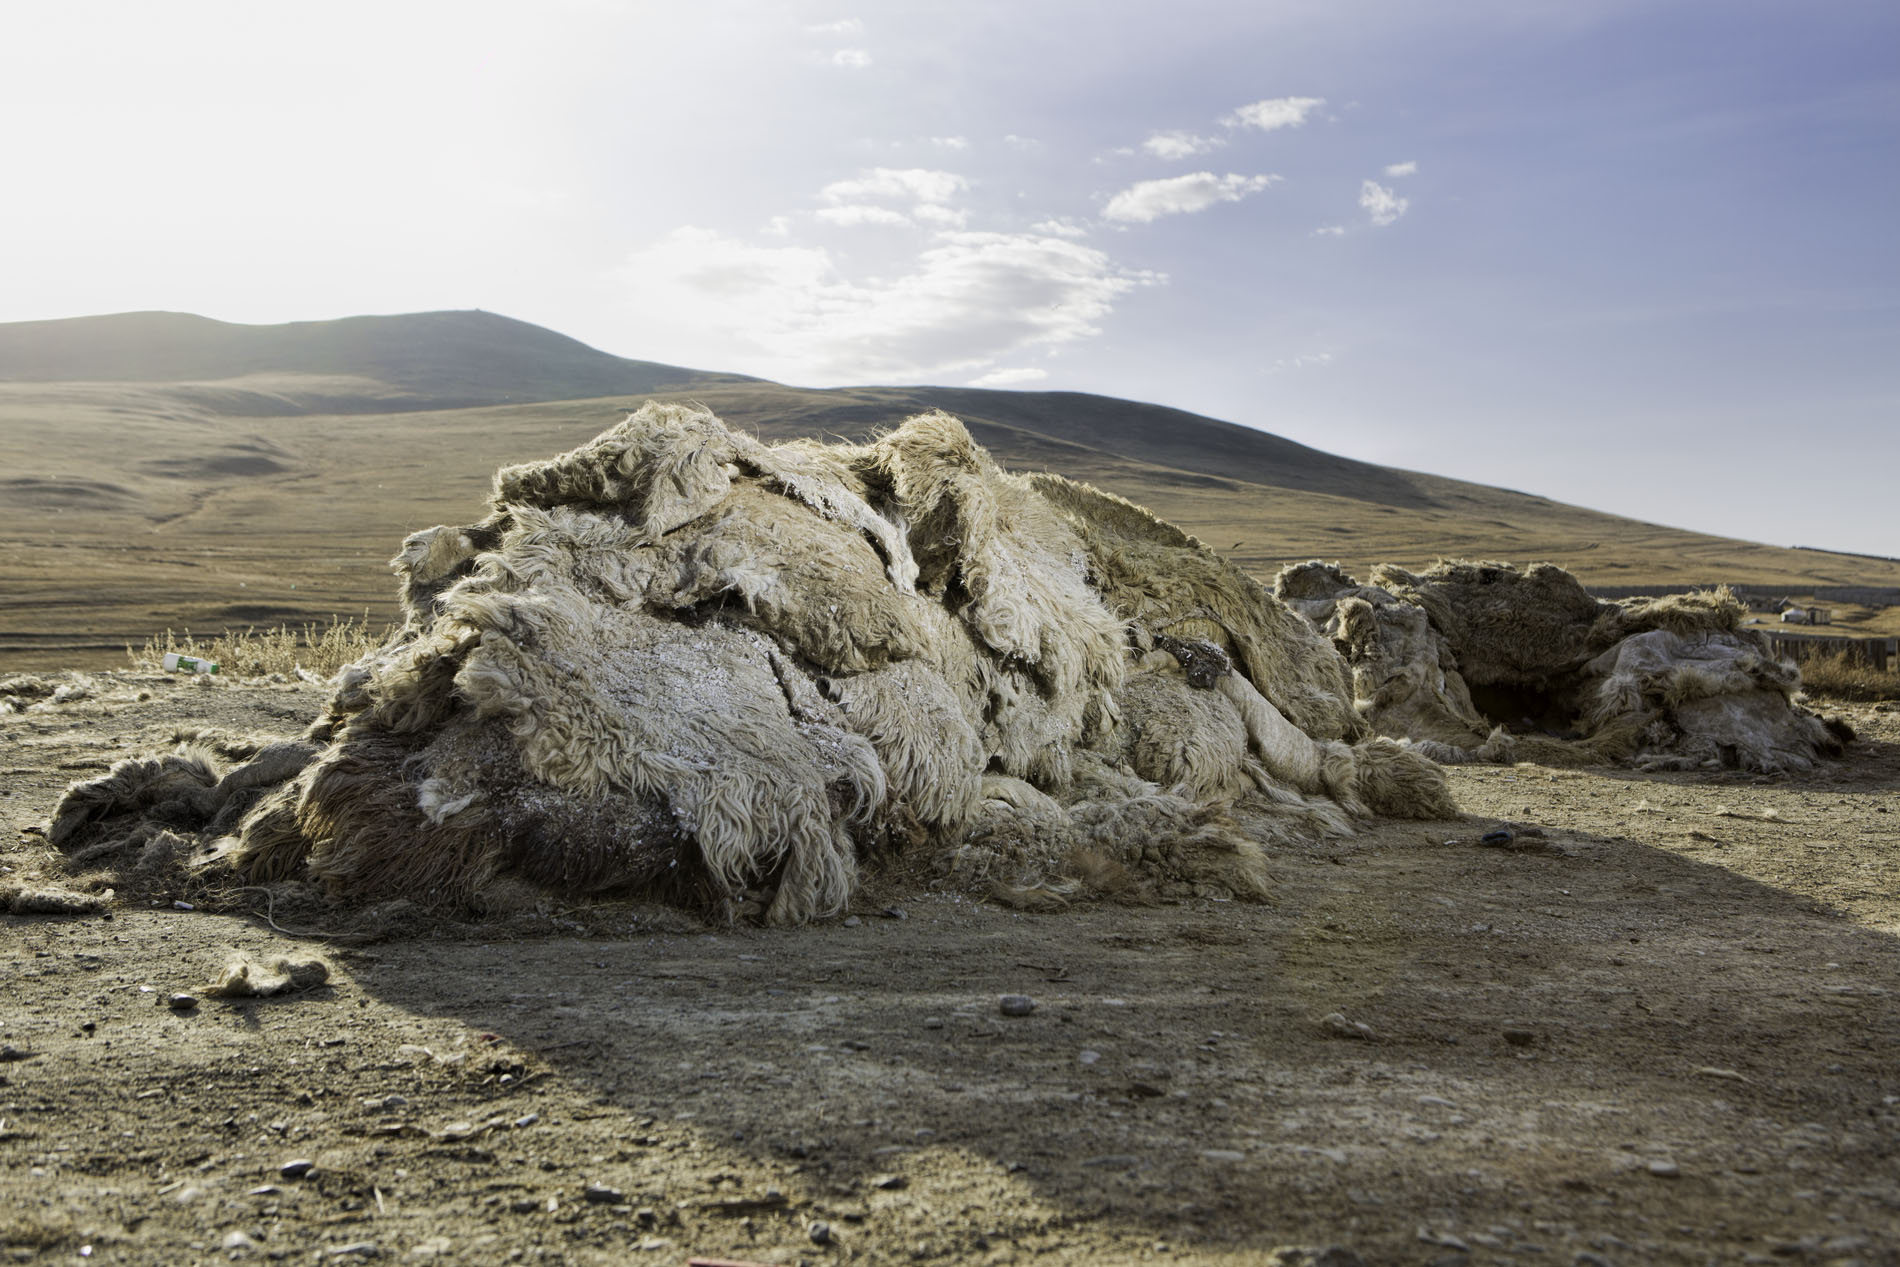 Image - Mongolian Government supports leather and hides production